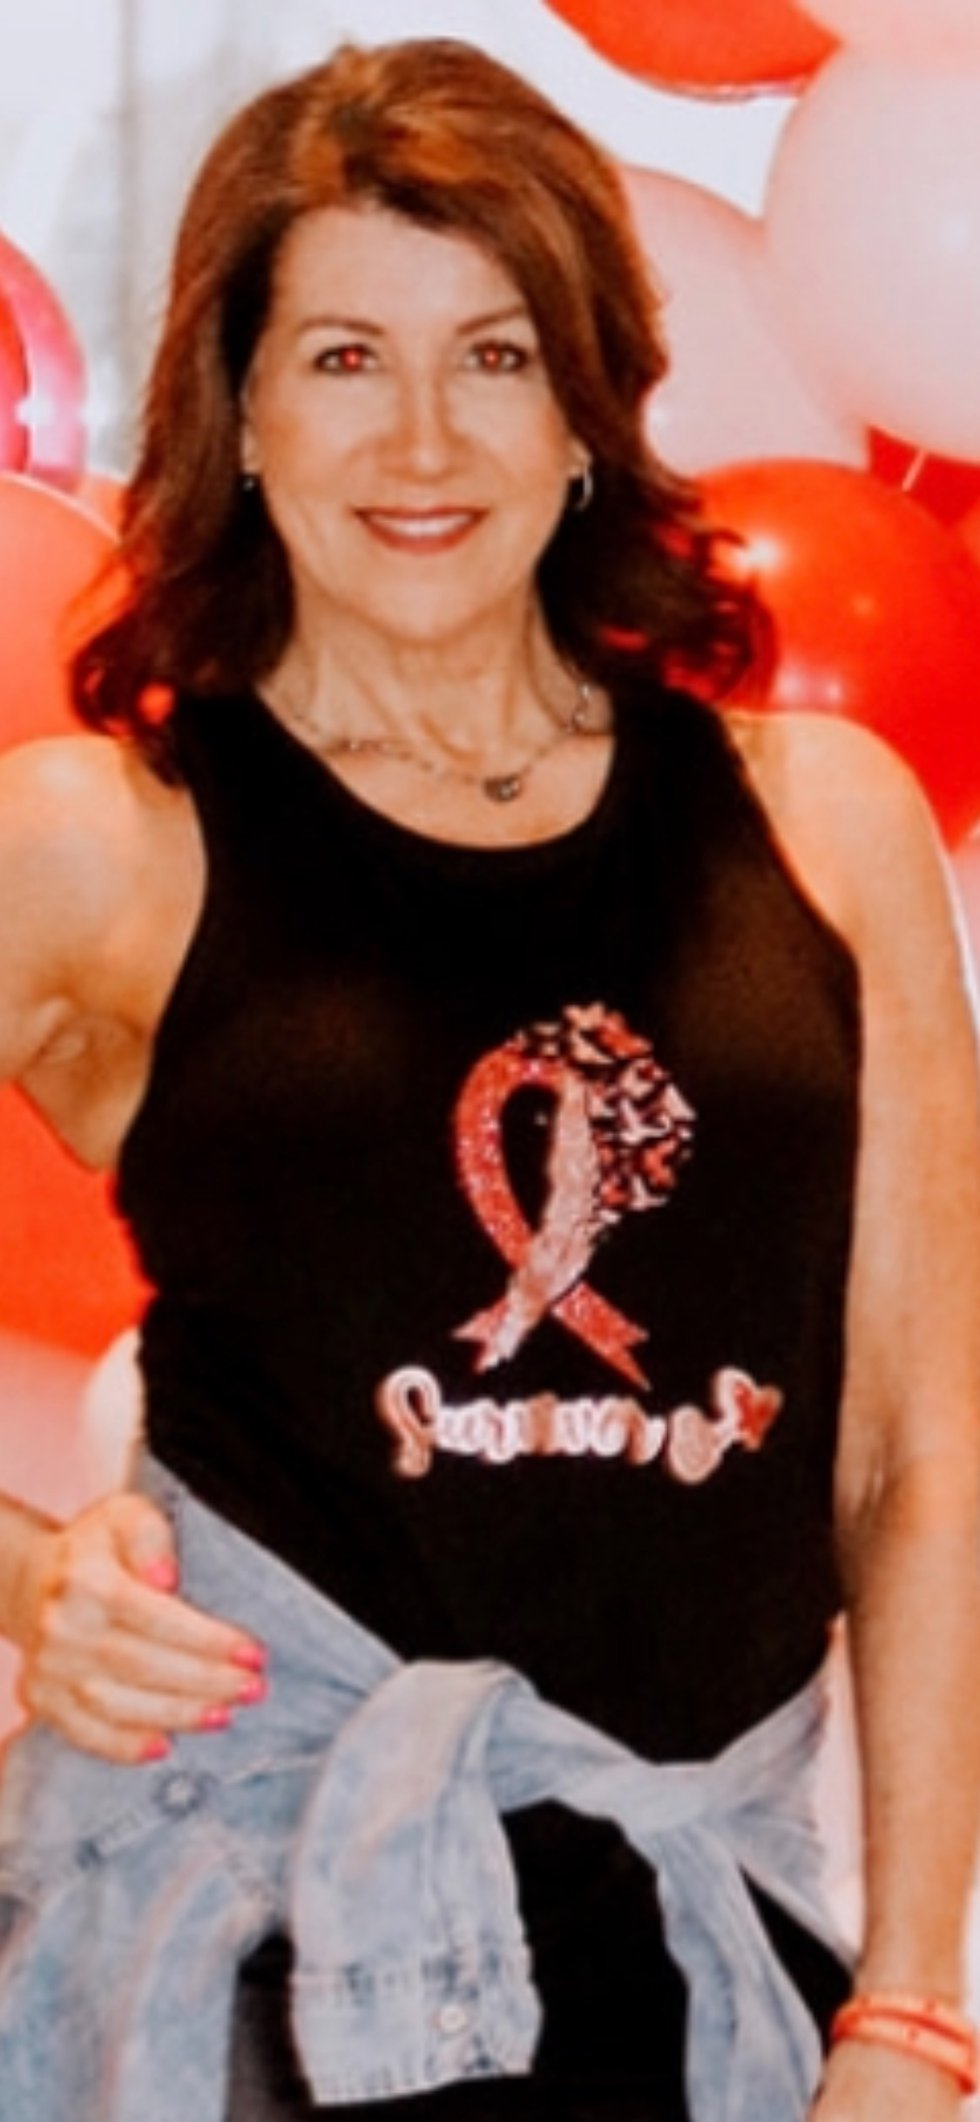 Breast cancer survivor says knowing your body and early detection is key to beating the disease